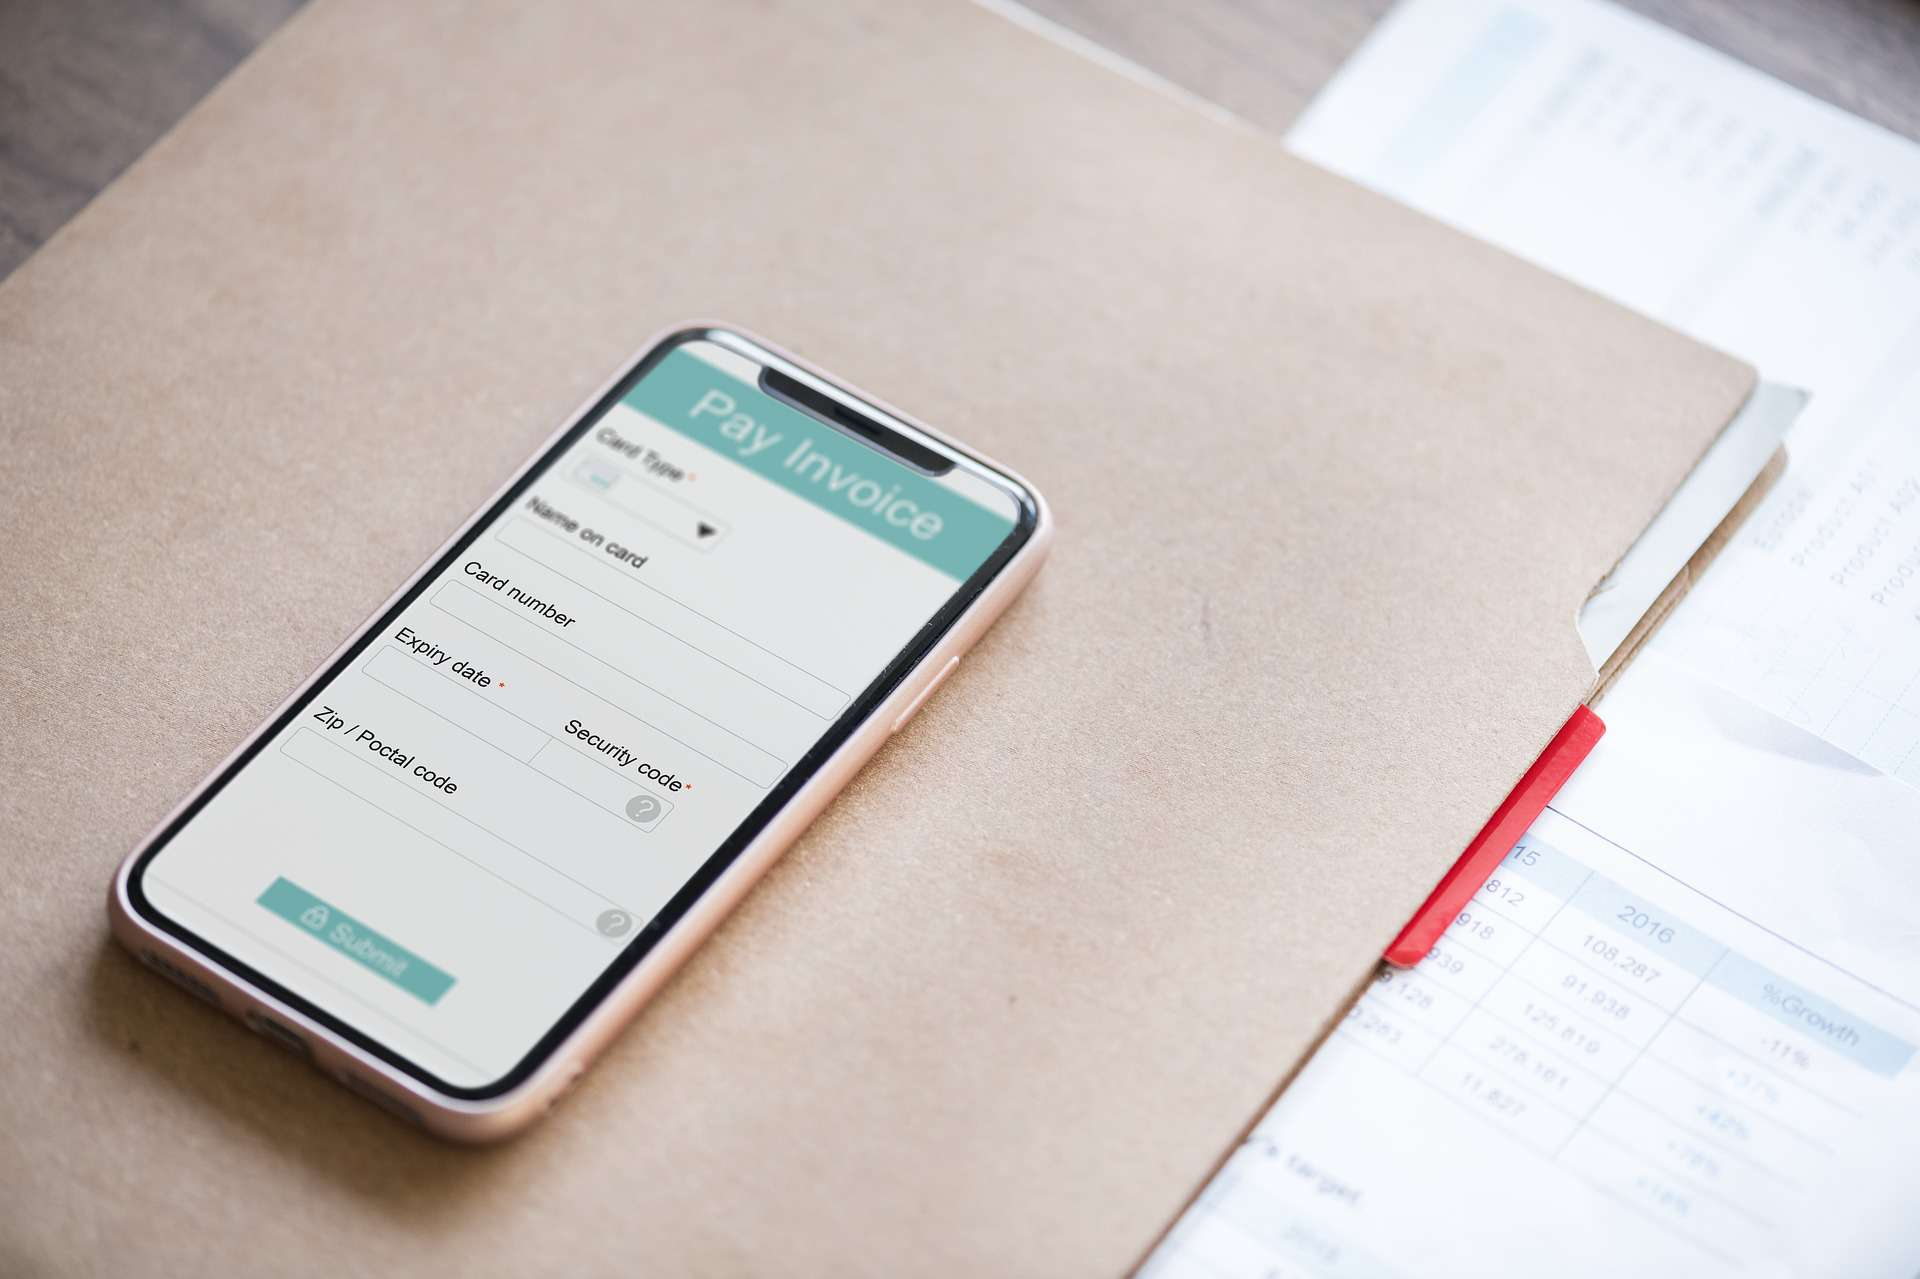 Invoice app on mobile